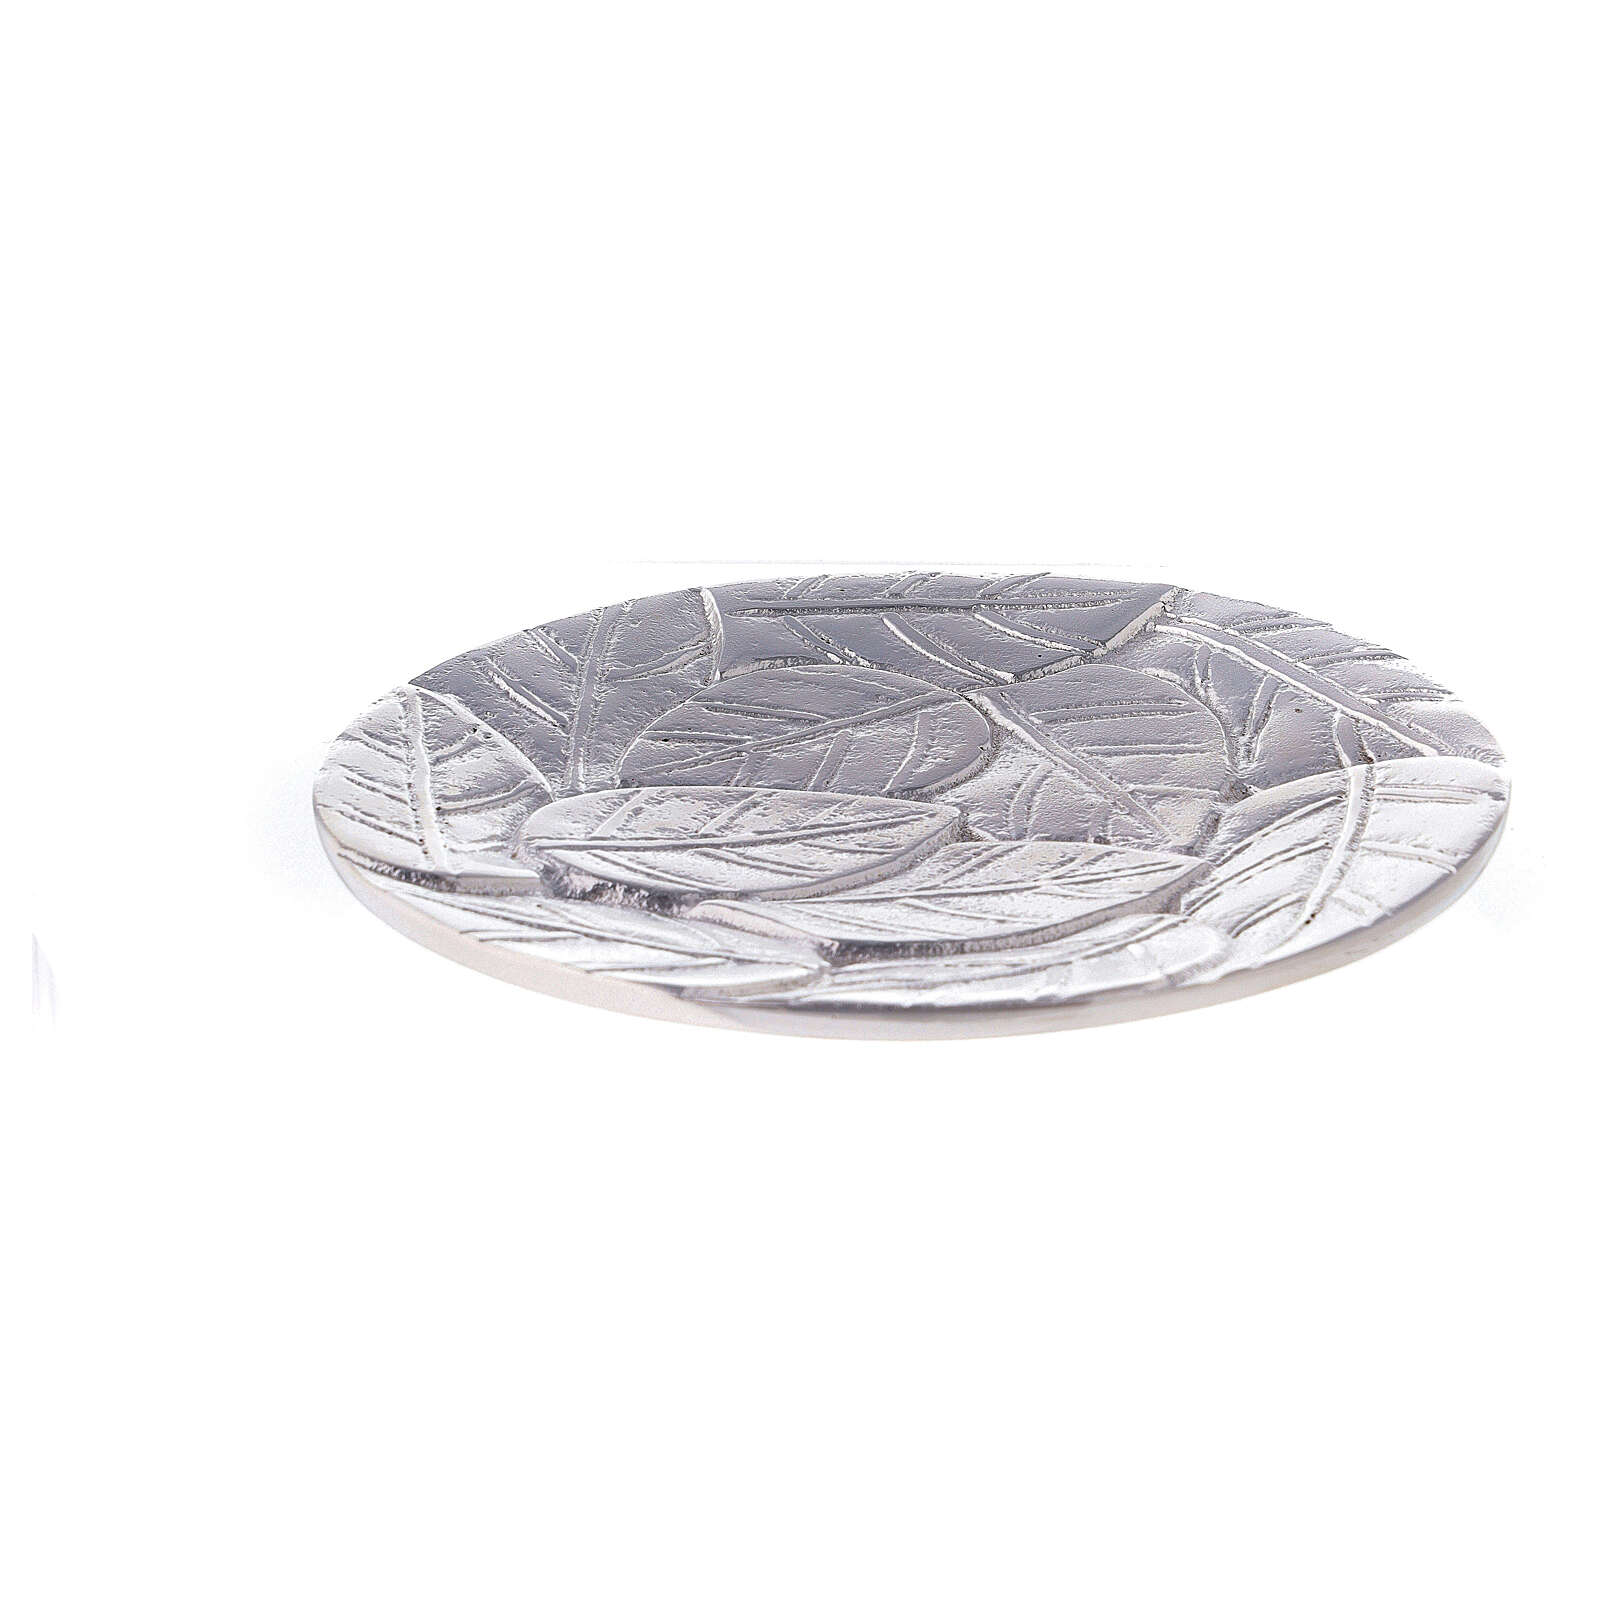 Aluminium candle holder plate with embossed leaf pattern d. 5 1/2 in 3